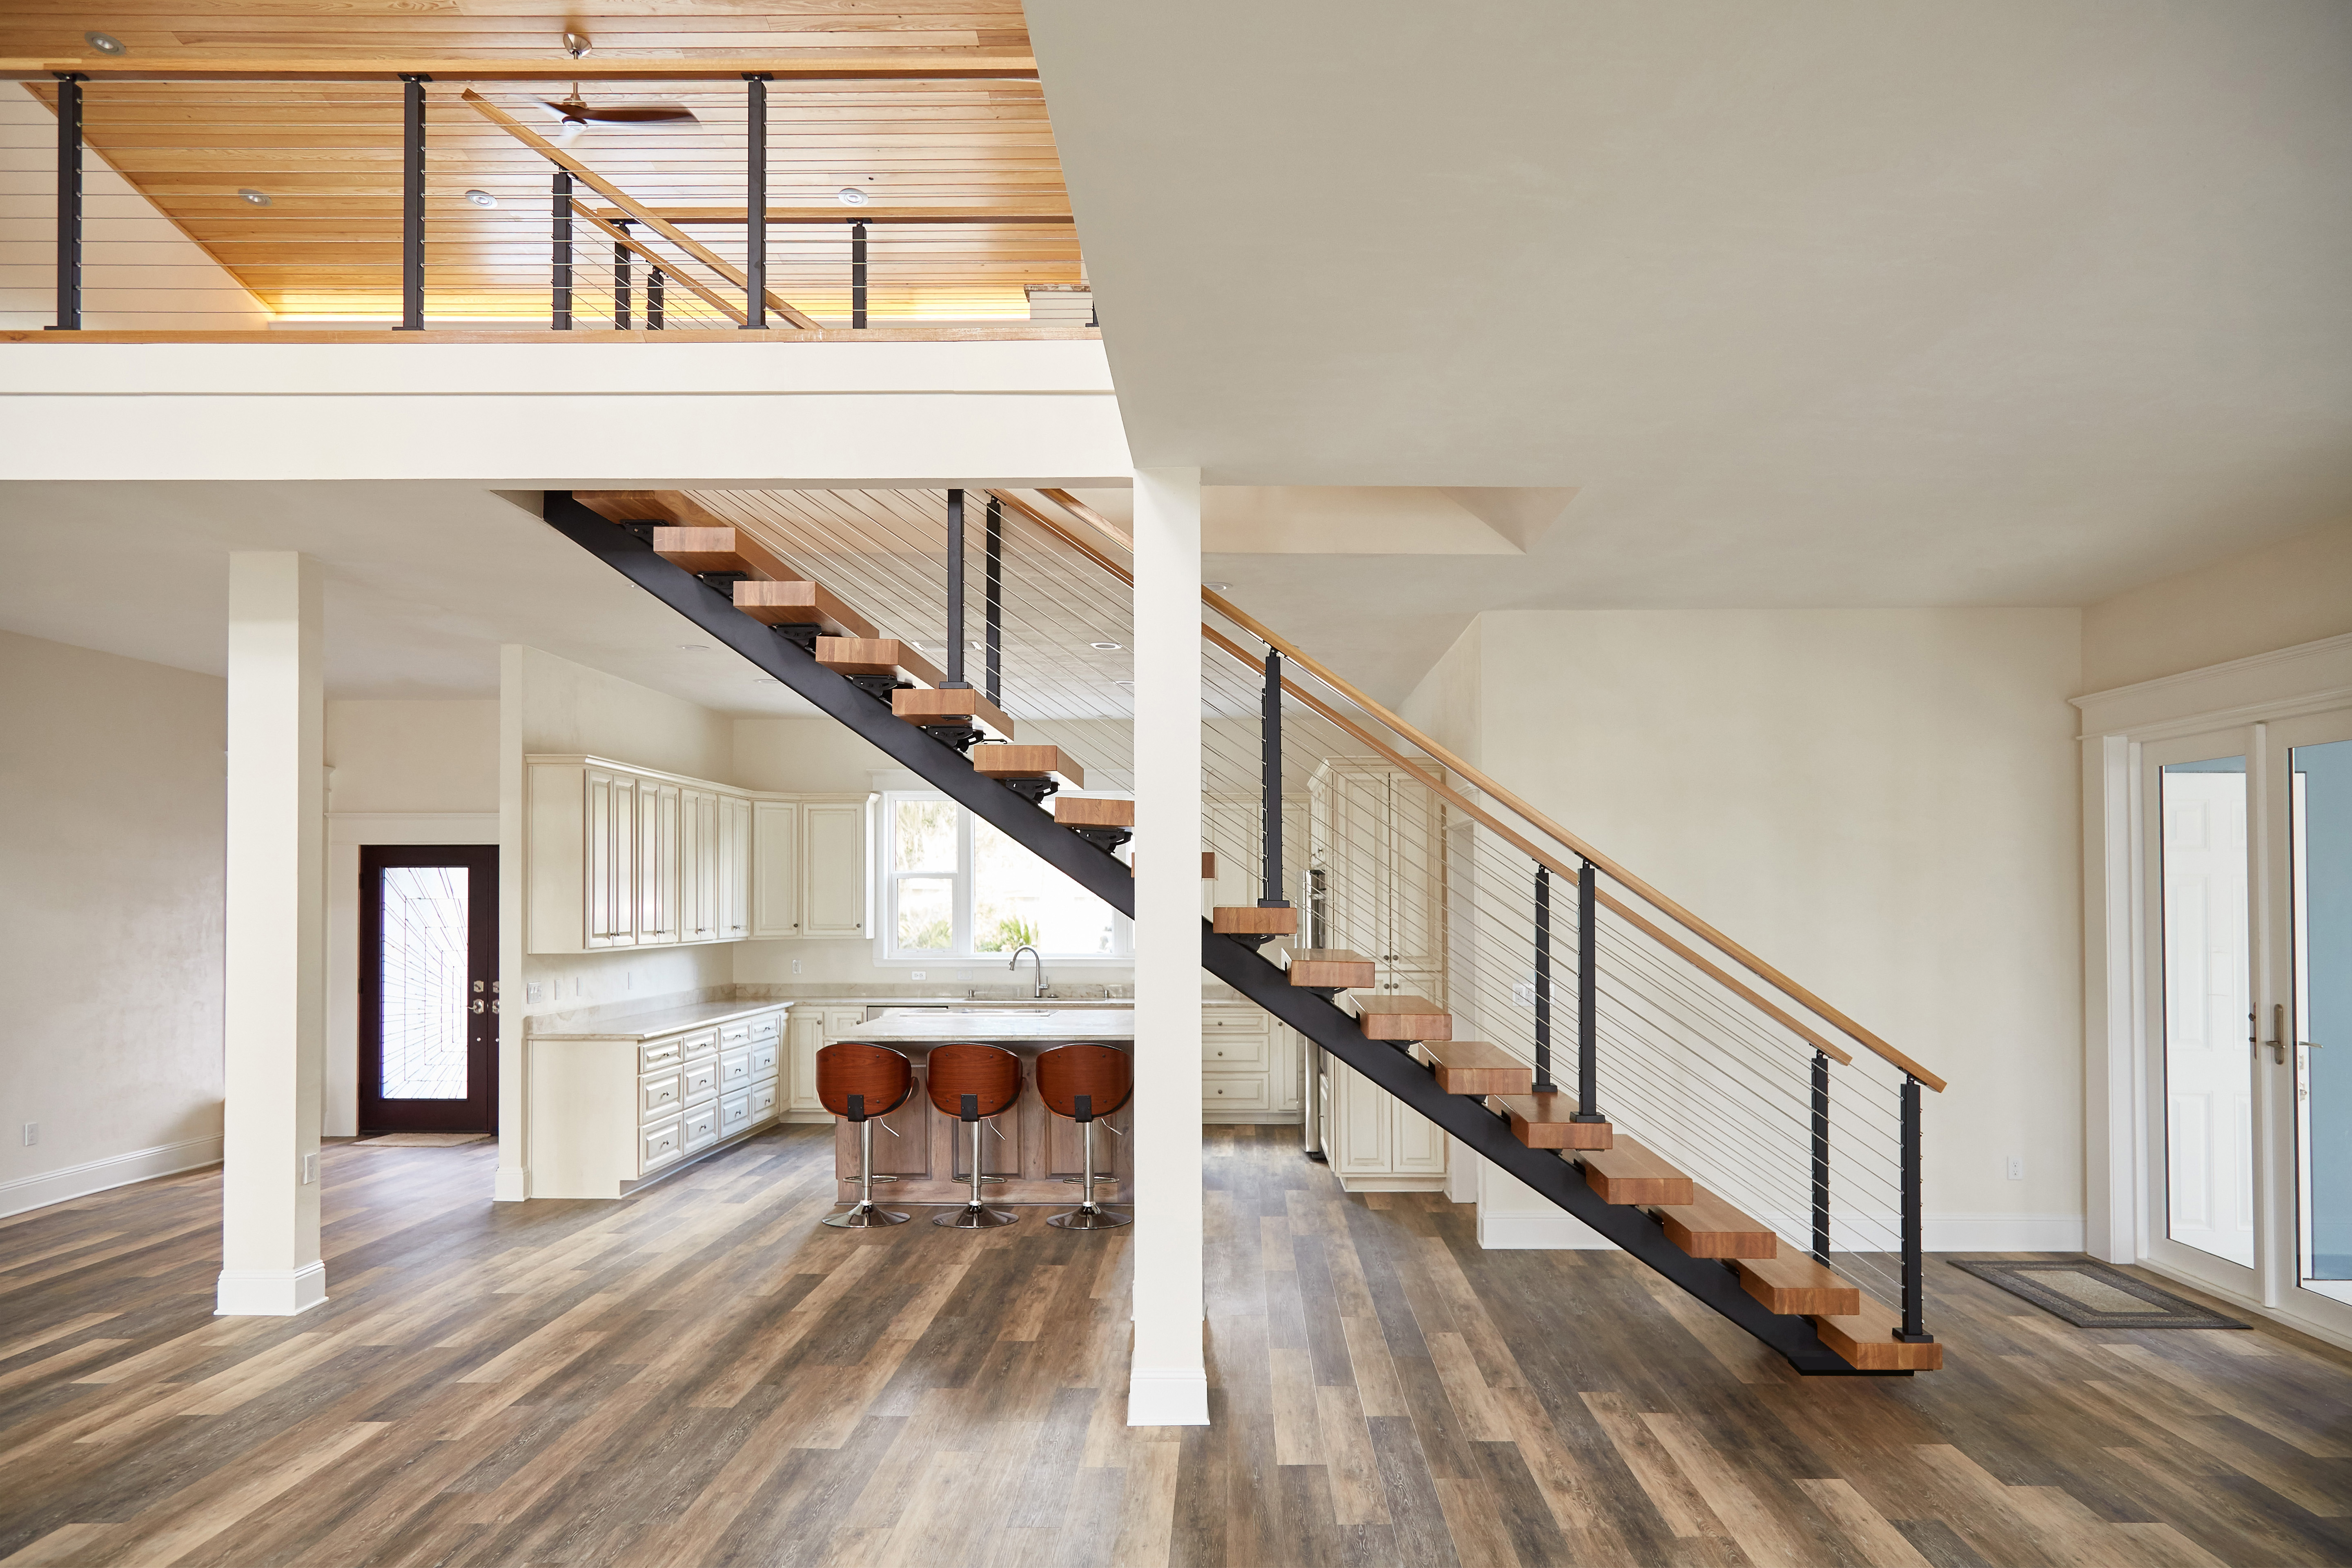 The Straight, Single Steel Stringer FLIGHT System Provides A Strong,  Minimalist Backbone For A Modern Stairway. As You Can See, When Paired With  The Warmth ...